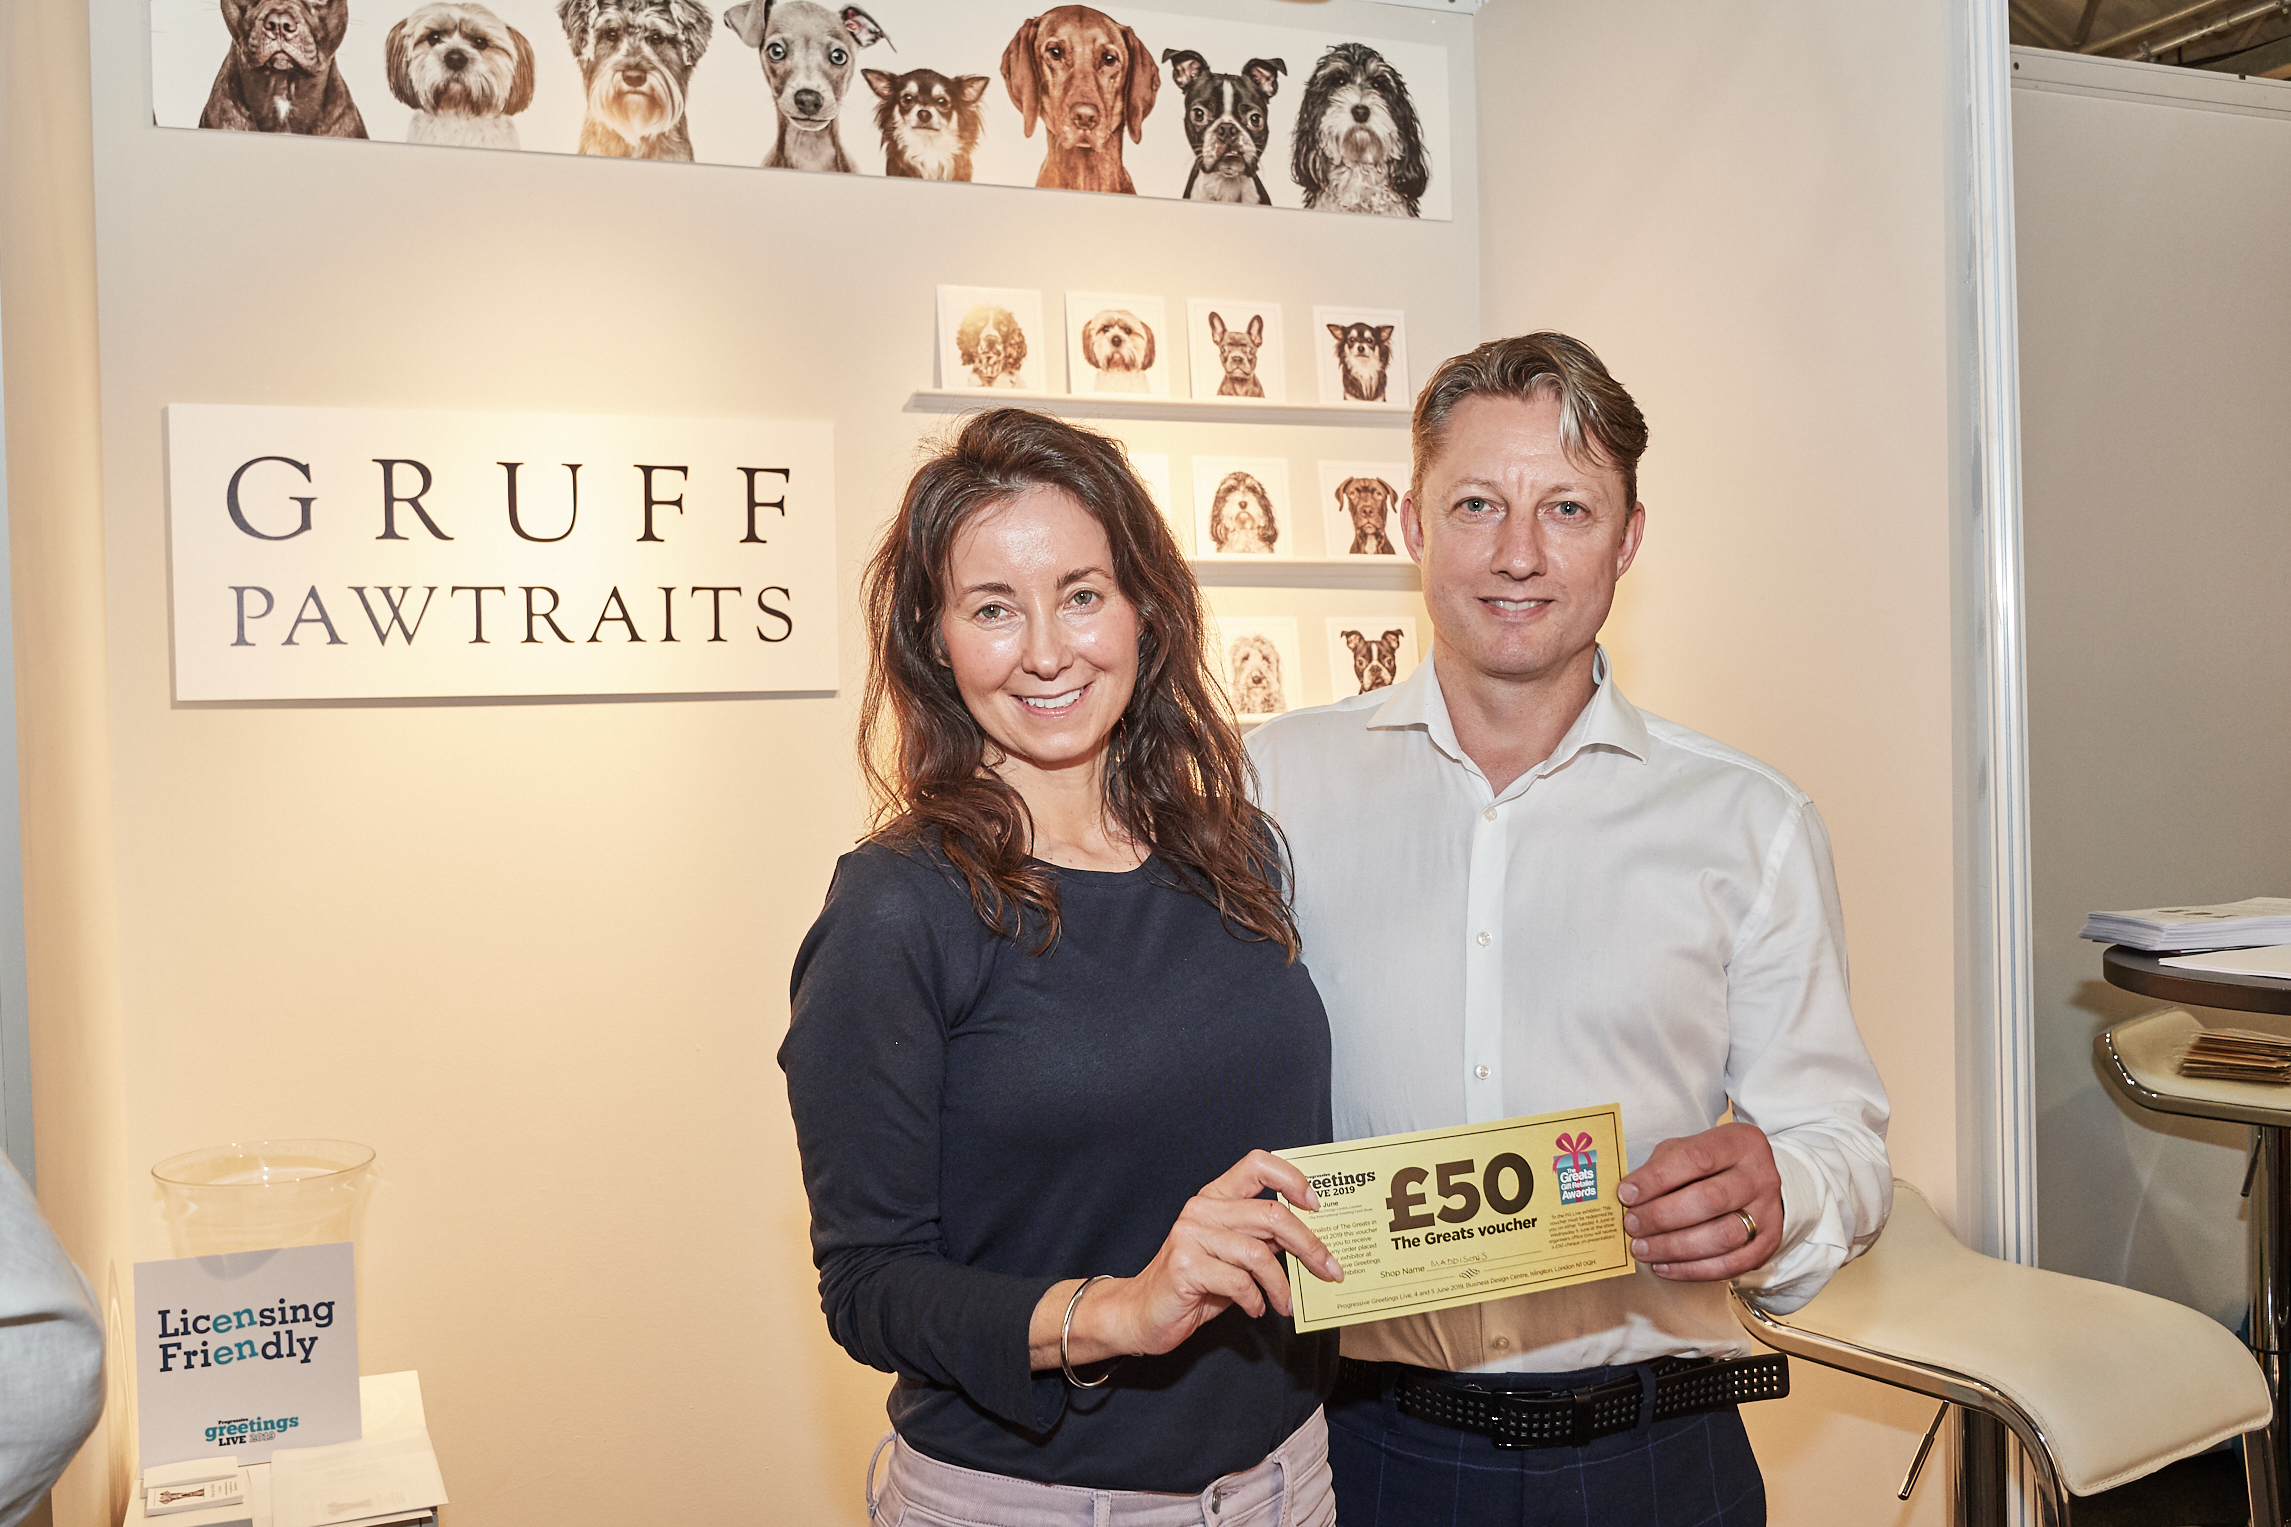 Above: Stephen McHale with Rhian Ap Gruffydd of Gruff Pawtraits at PG Live.